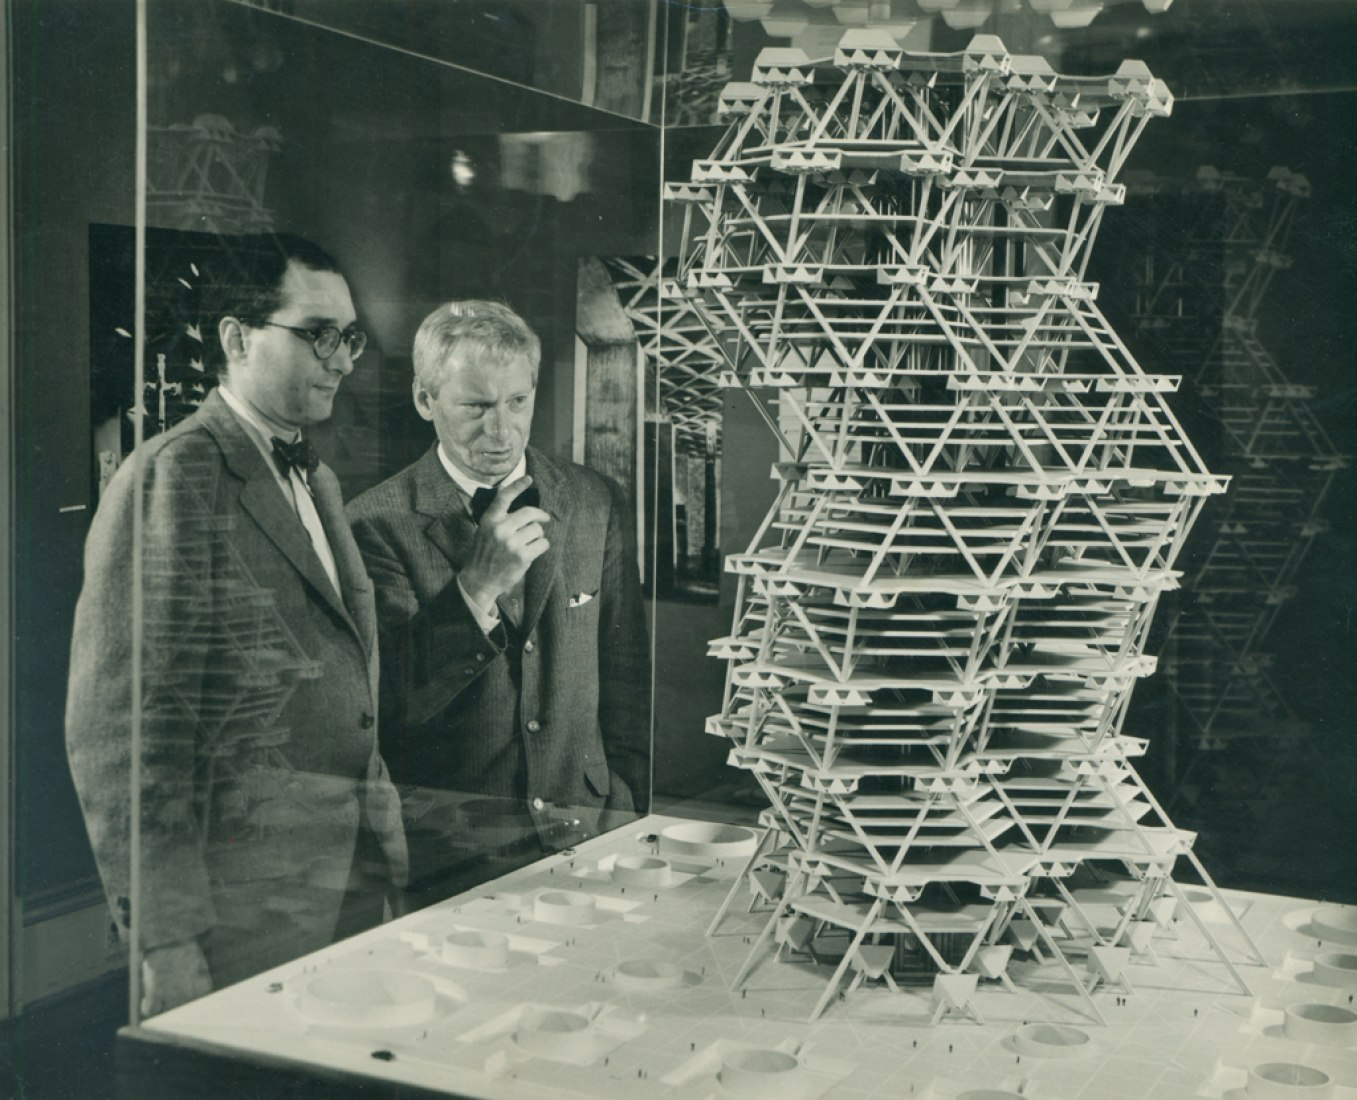 Louis Kahn and Jonas Salk with model of the City Tower at at Cornell University. Date: February 1958. Photograph by Sue Ann Kahn.